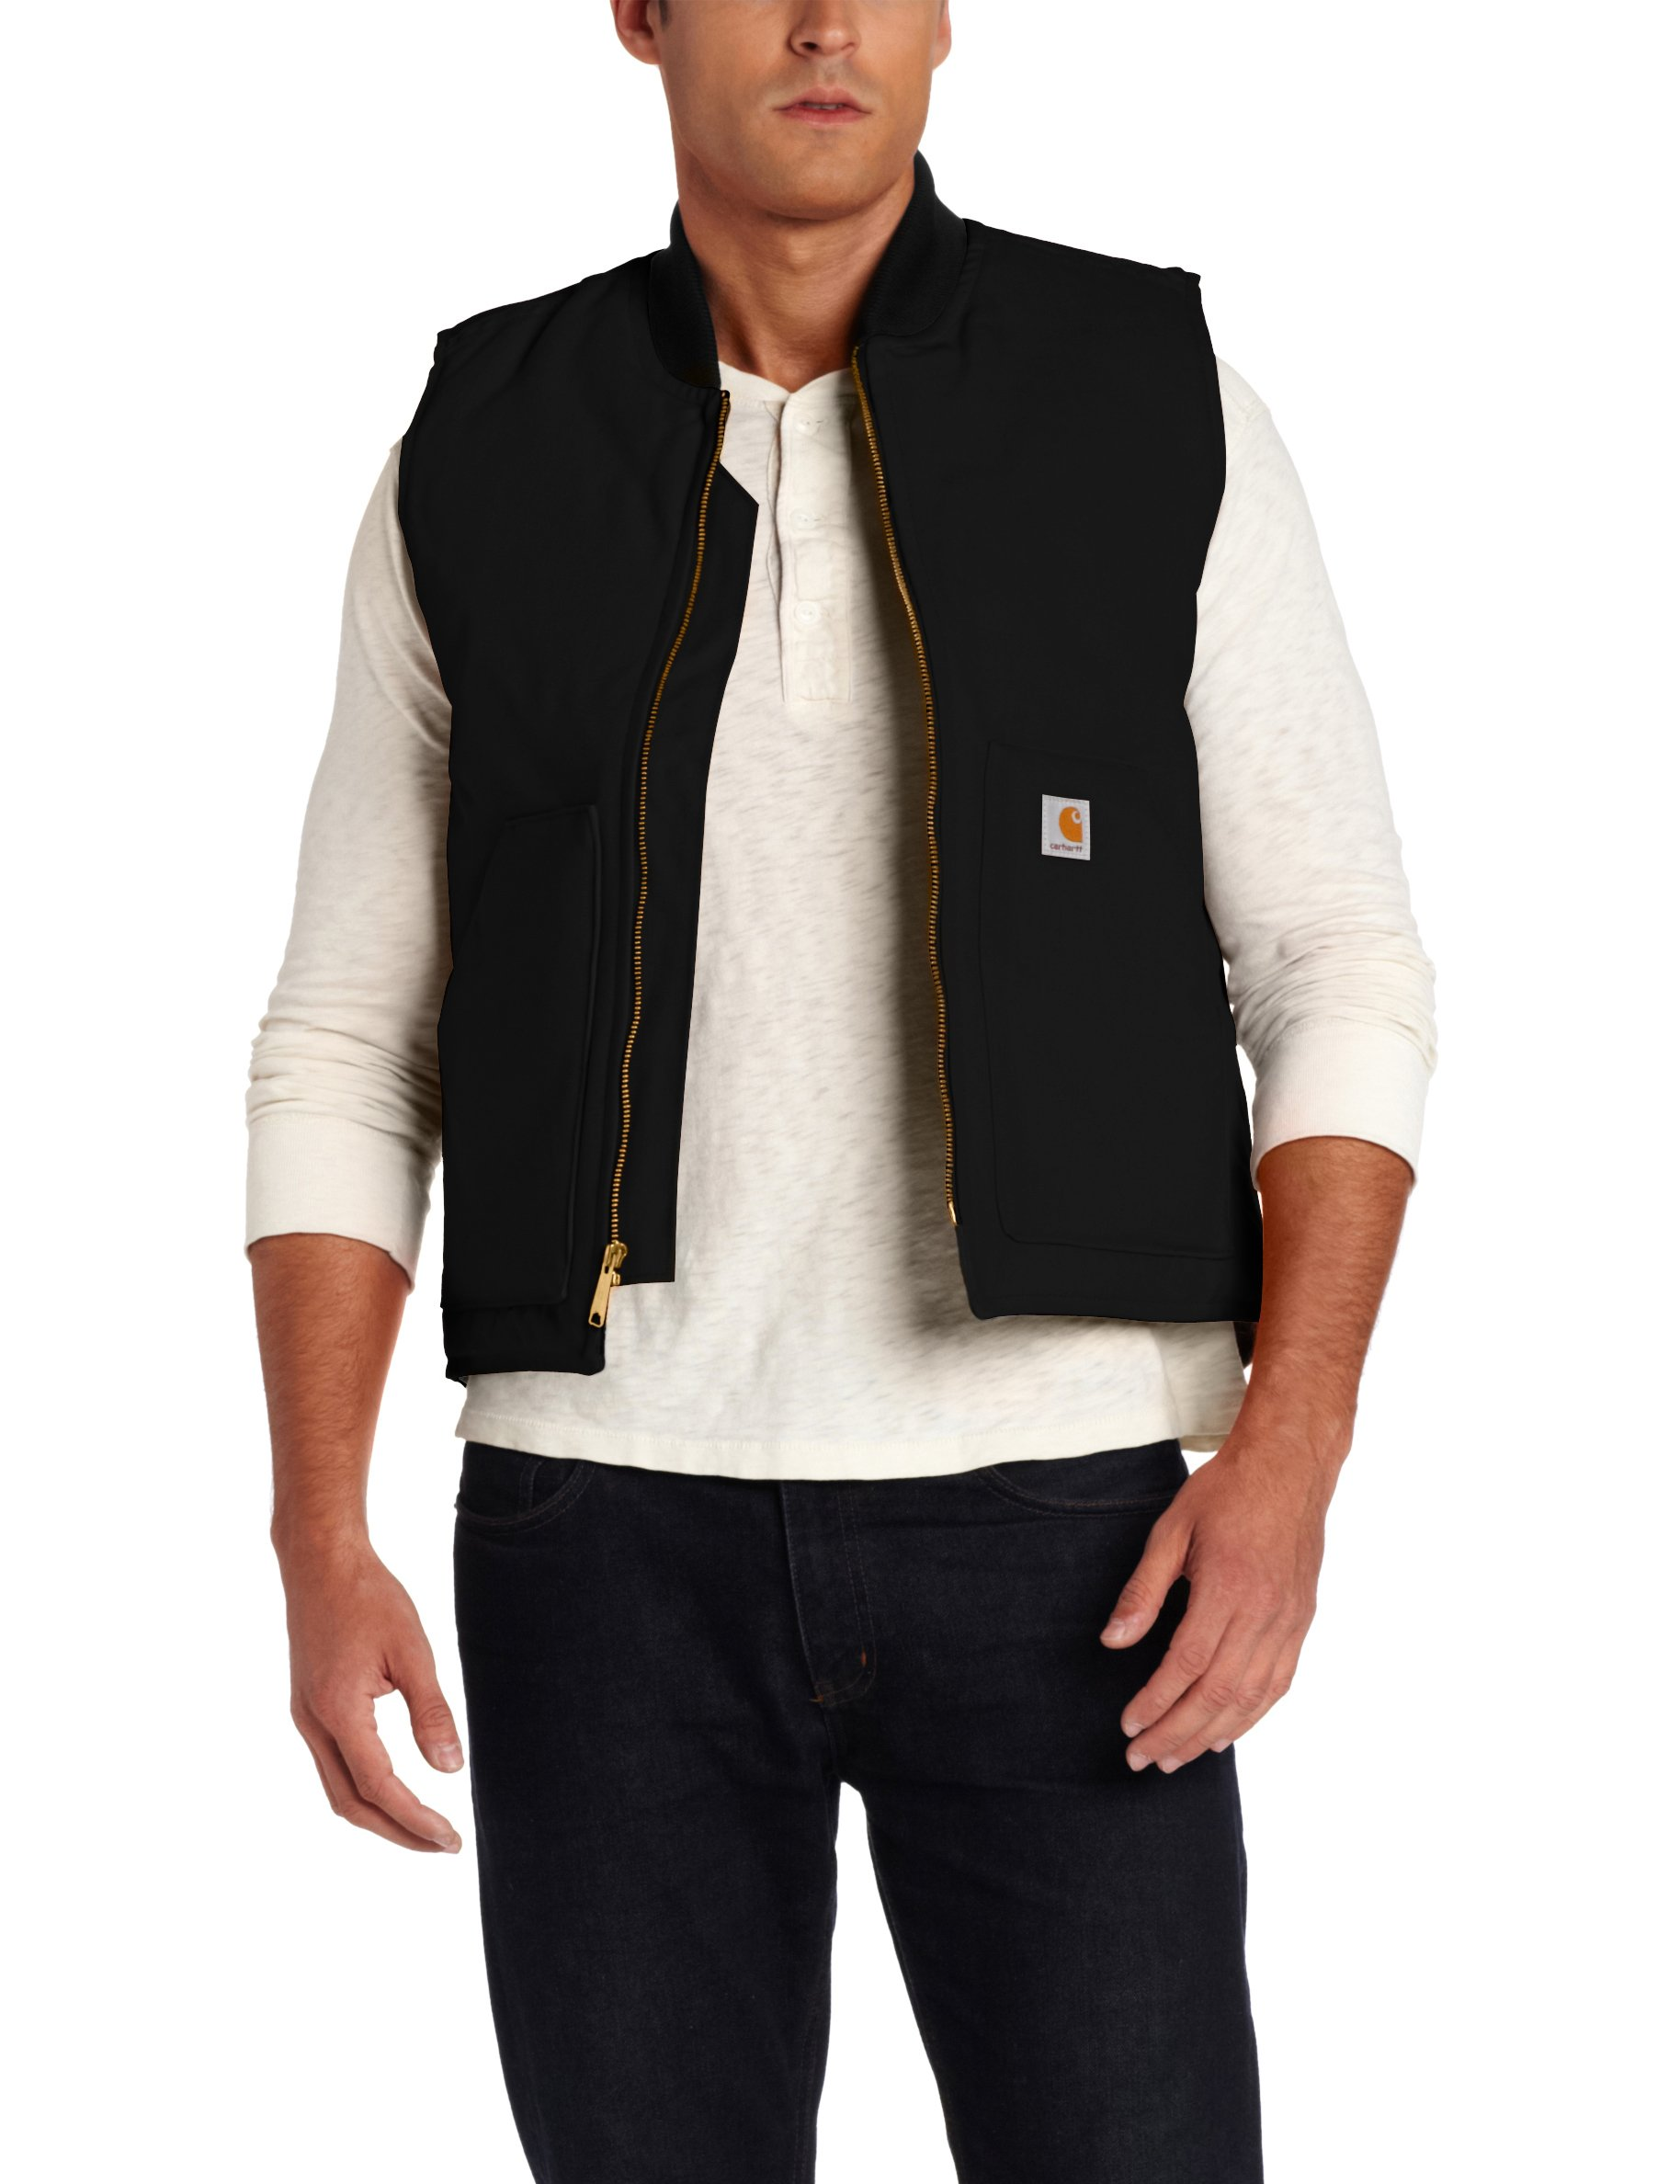 Carhartt Men's Arctic-Quilt Lined Duck Vest (Regular and Big & Tall Sizes), Black, Large by Carhartt